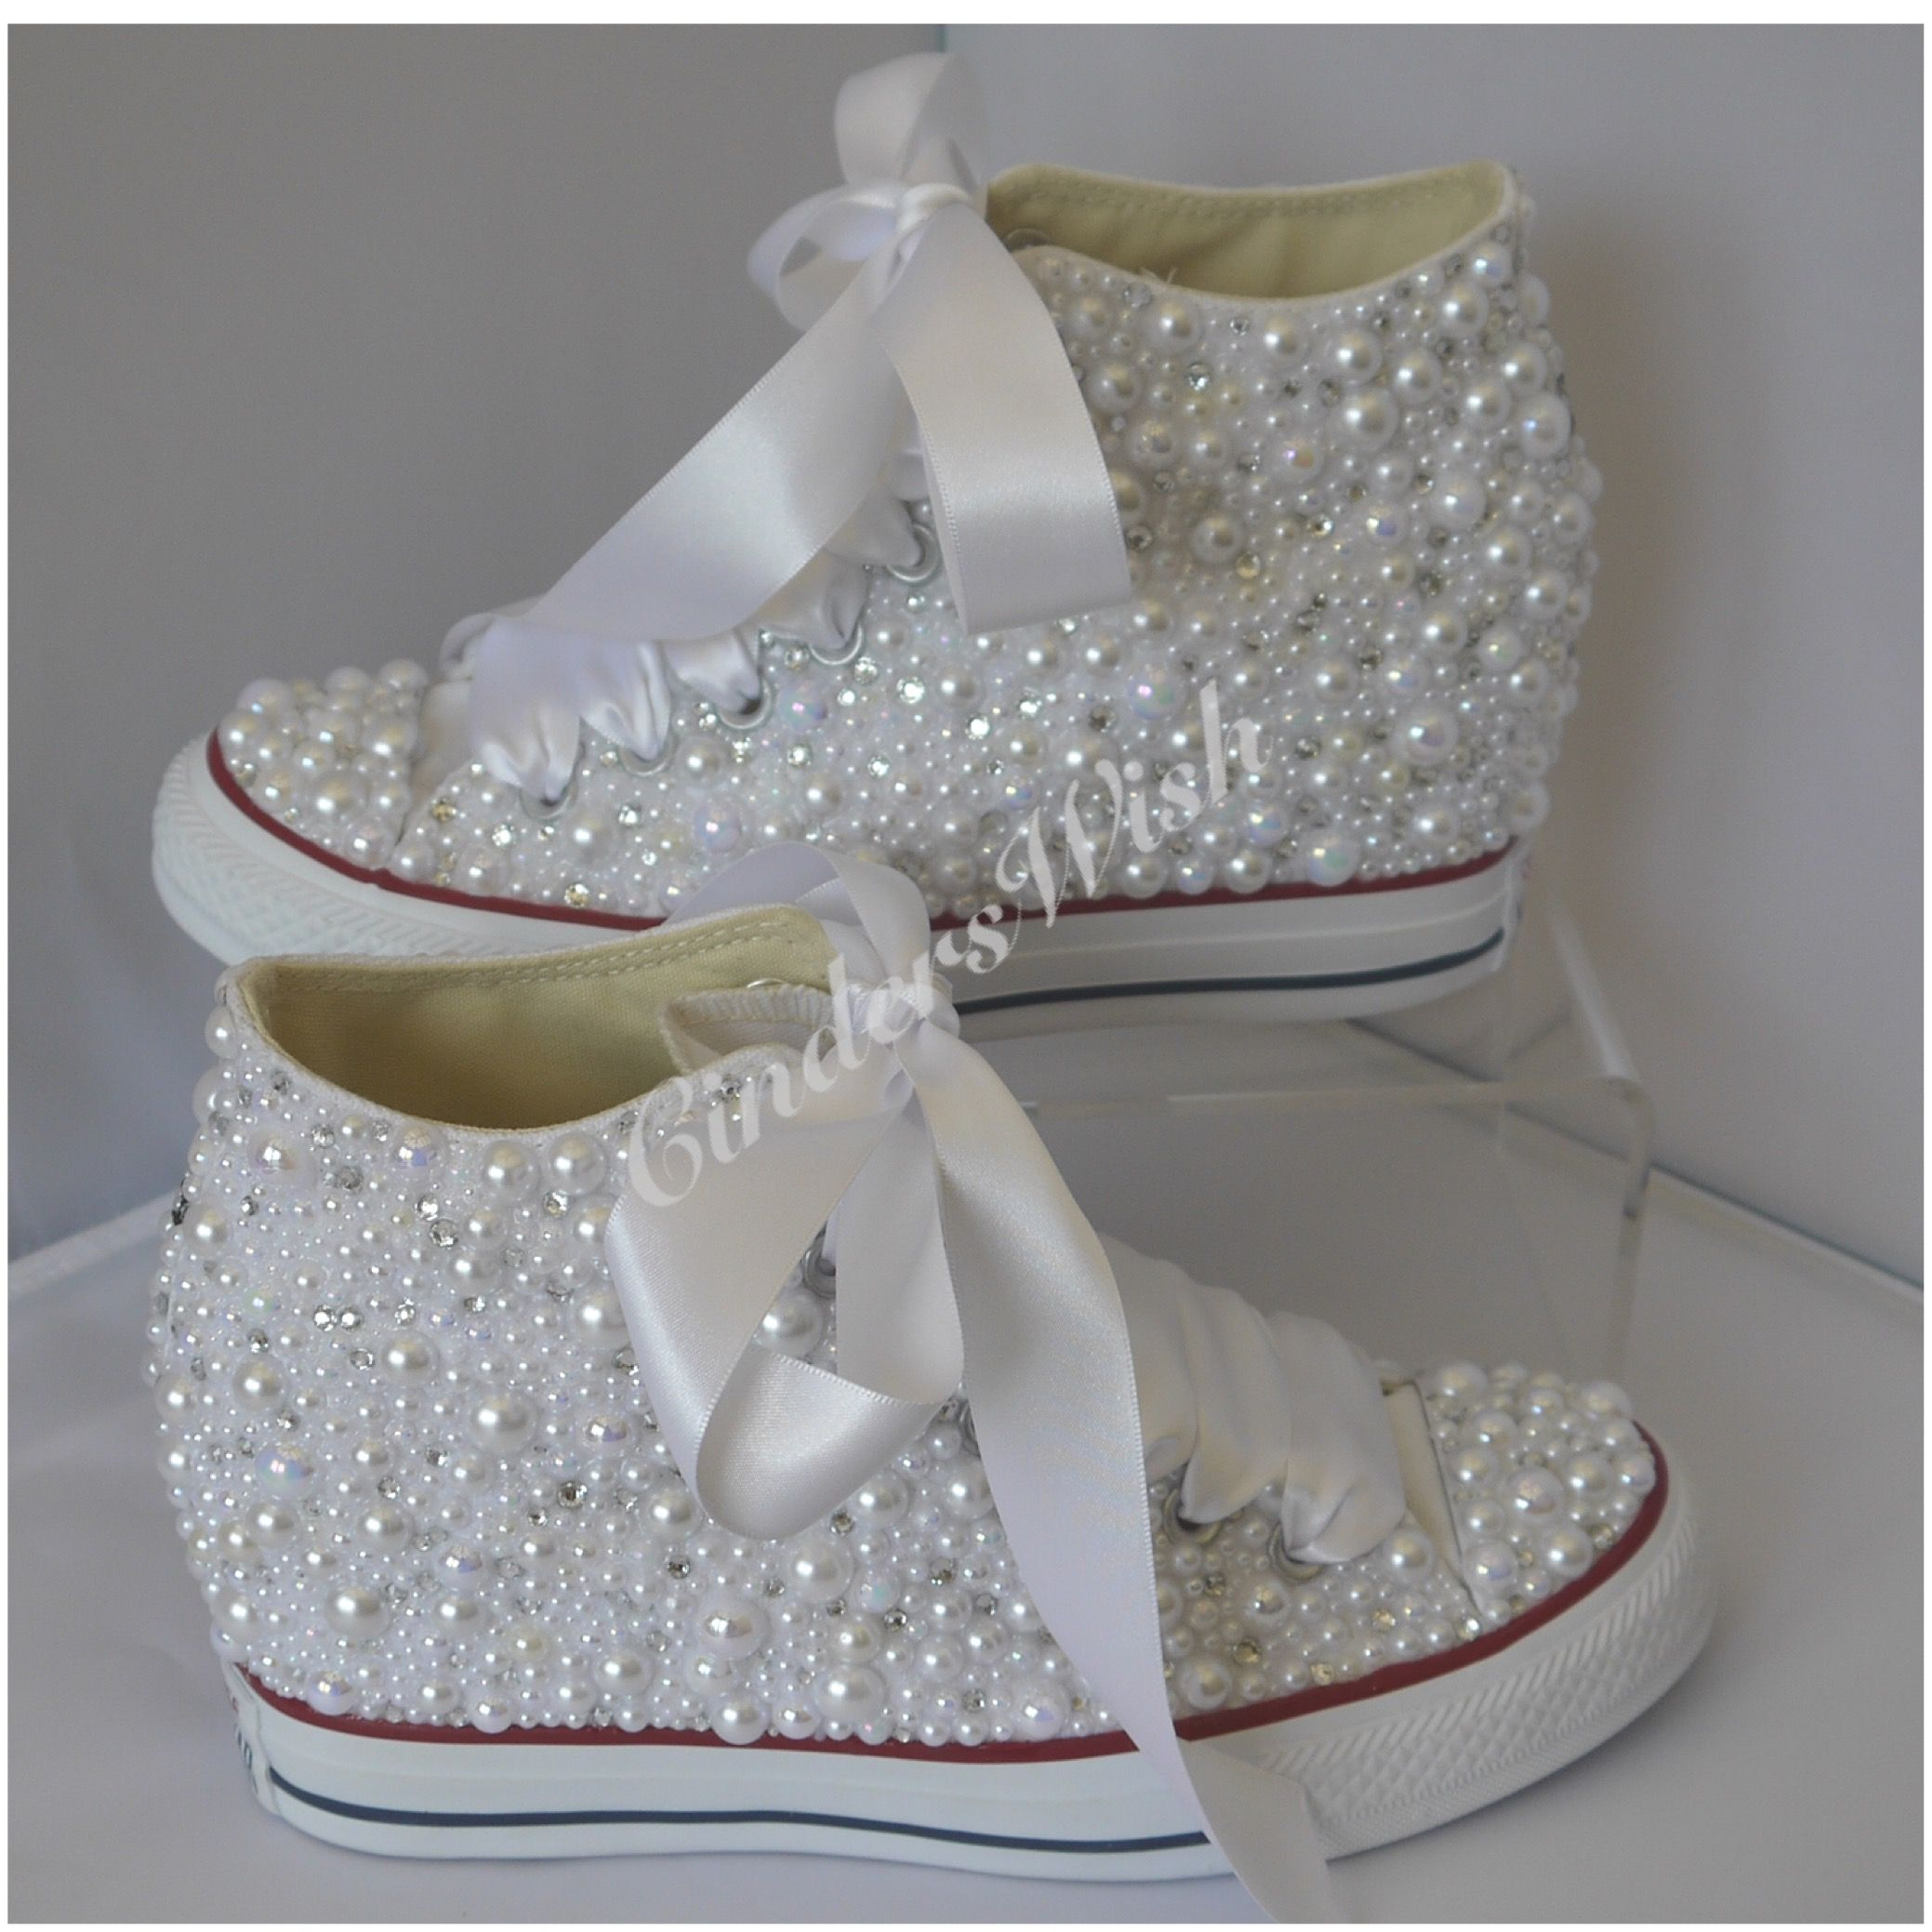 Beautiful Wedge Pearl Wedding Converse. All over pearls converse   wedding  converse    wedge  vintage  pearls  personalised  weddingshoes  oneofakind  ... 03d647726076